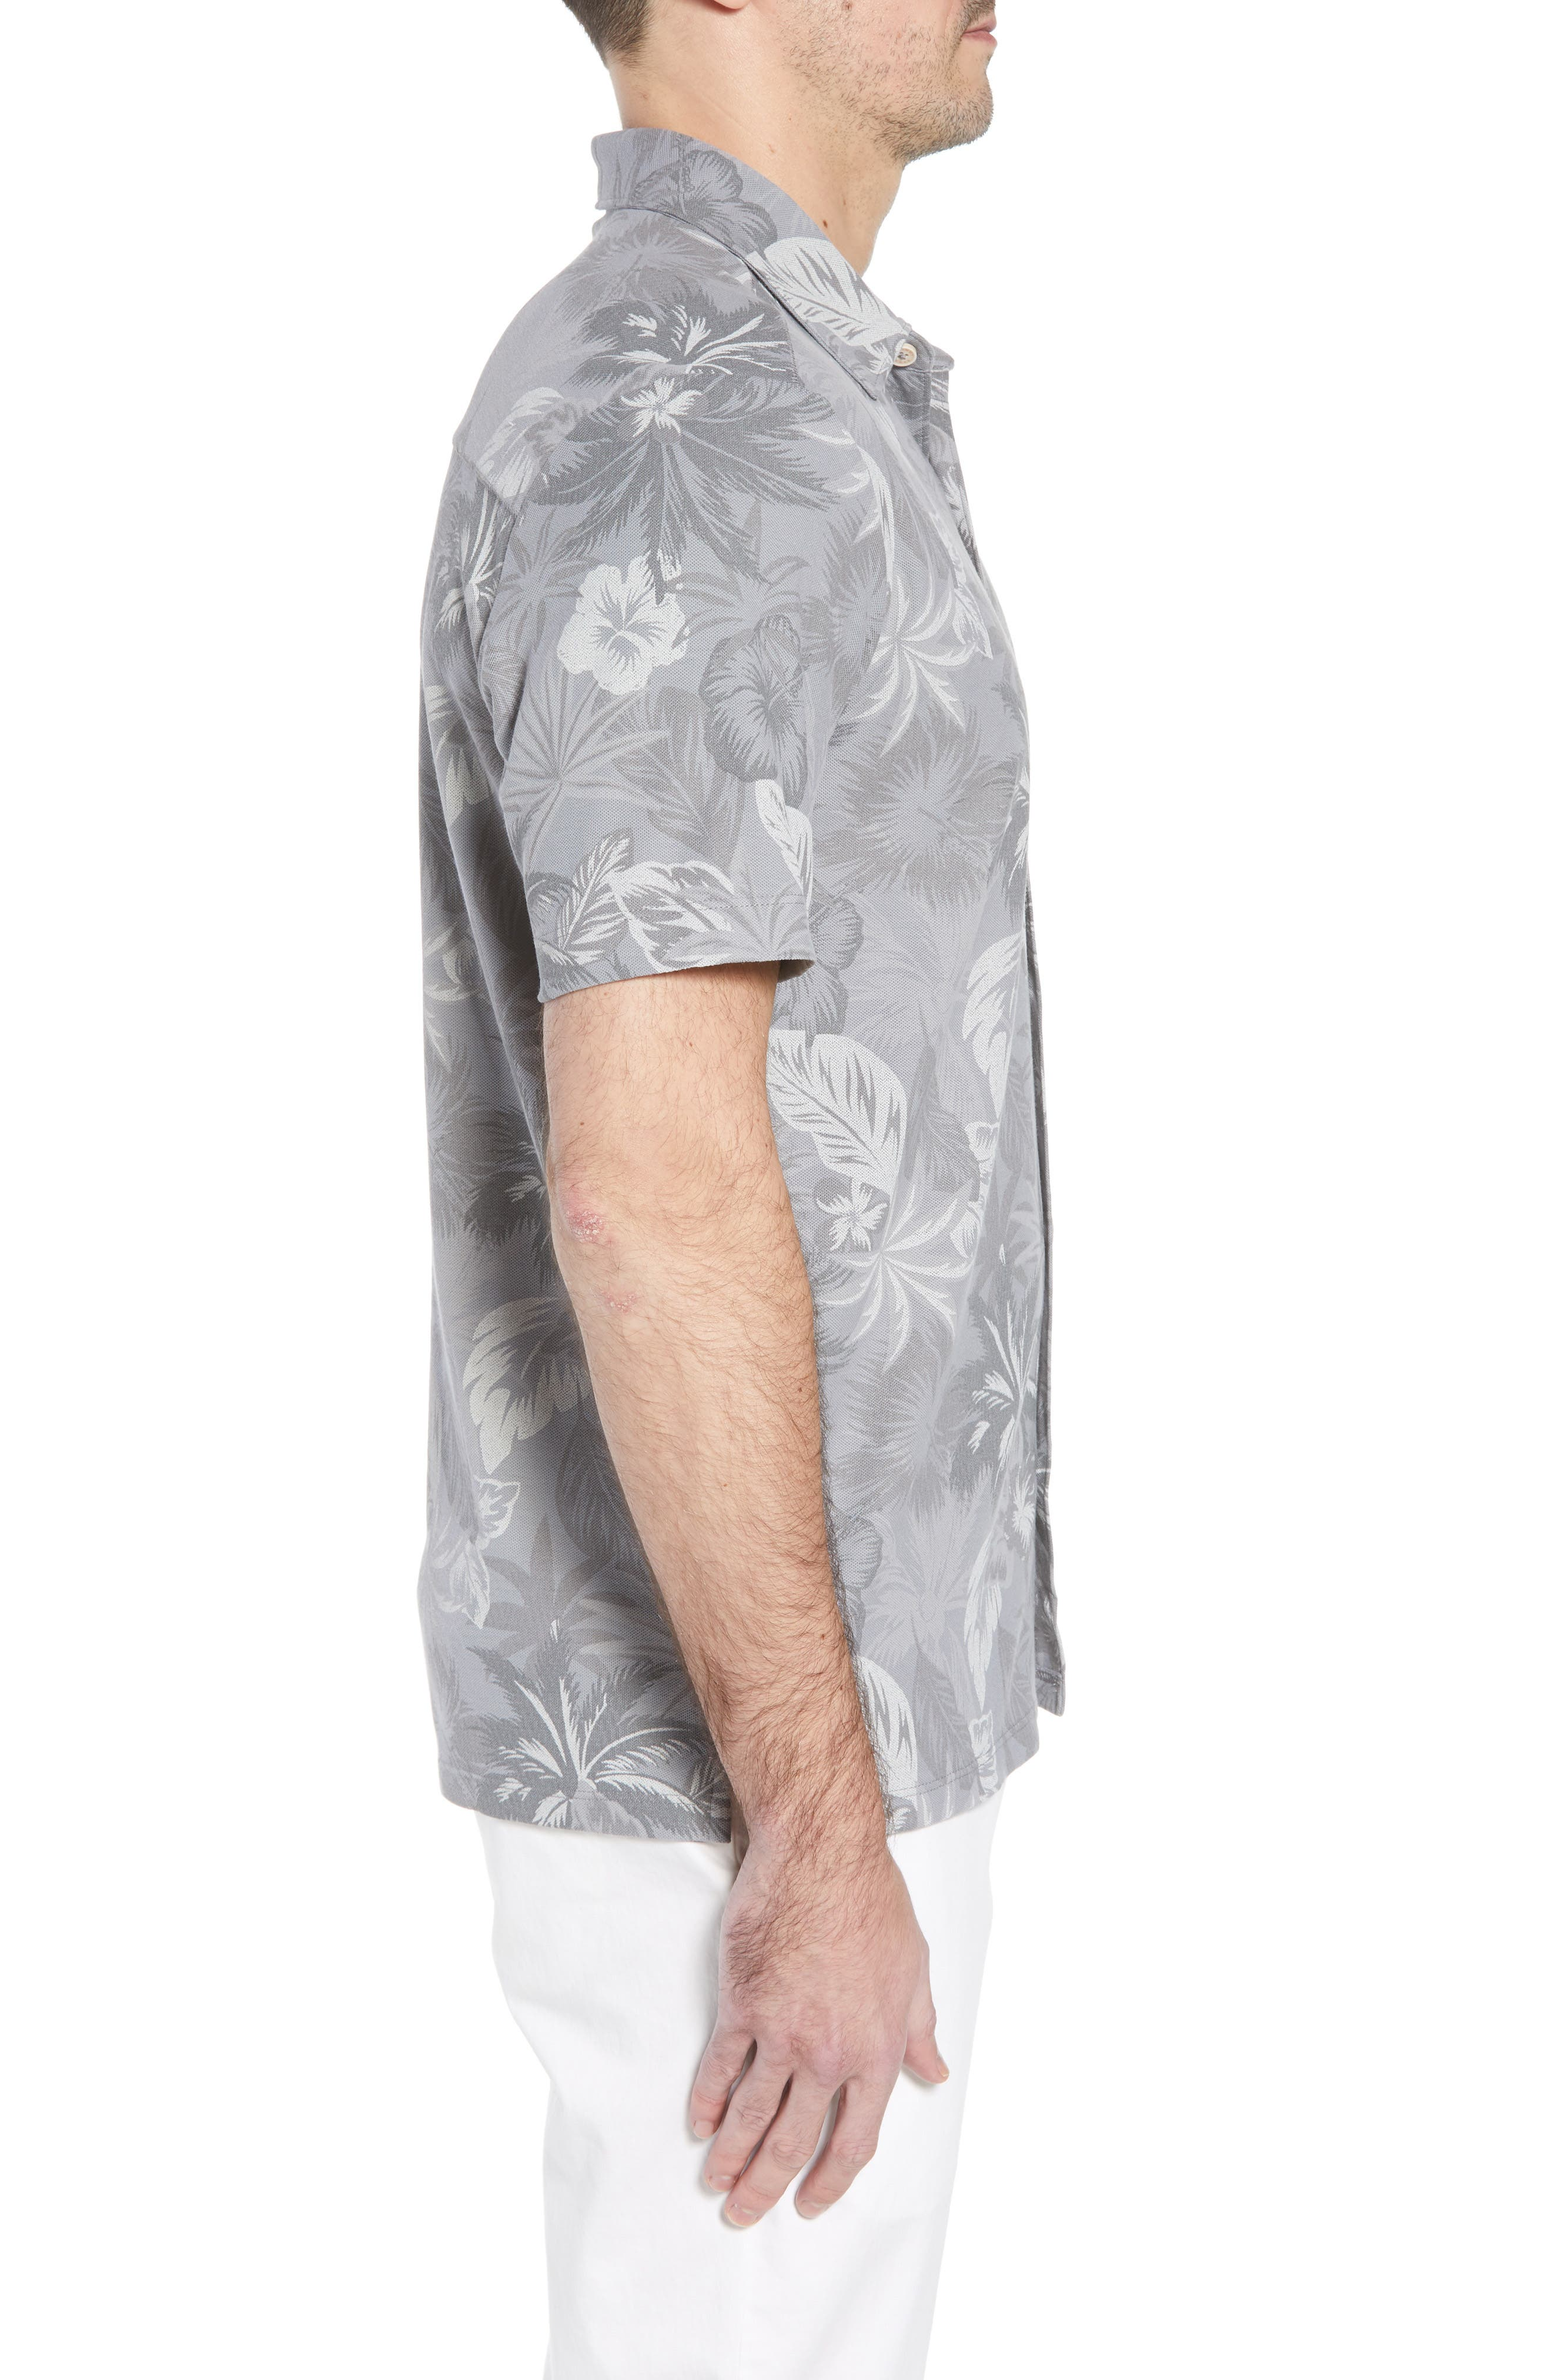 Fuego Floral Camp Shirt,                             Alternate thumbnail 3, color,                             Iced Slate